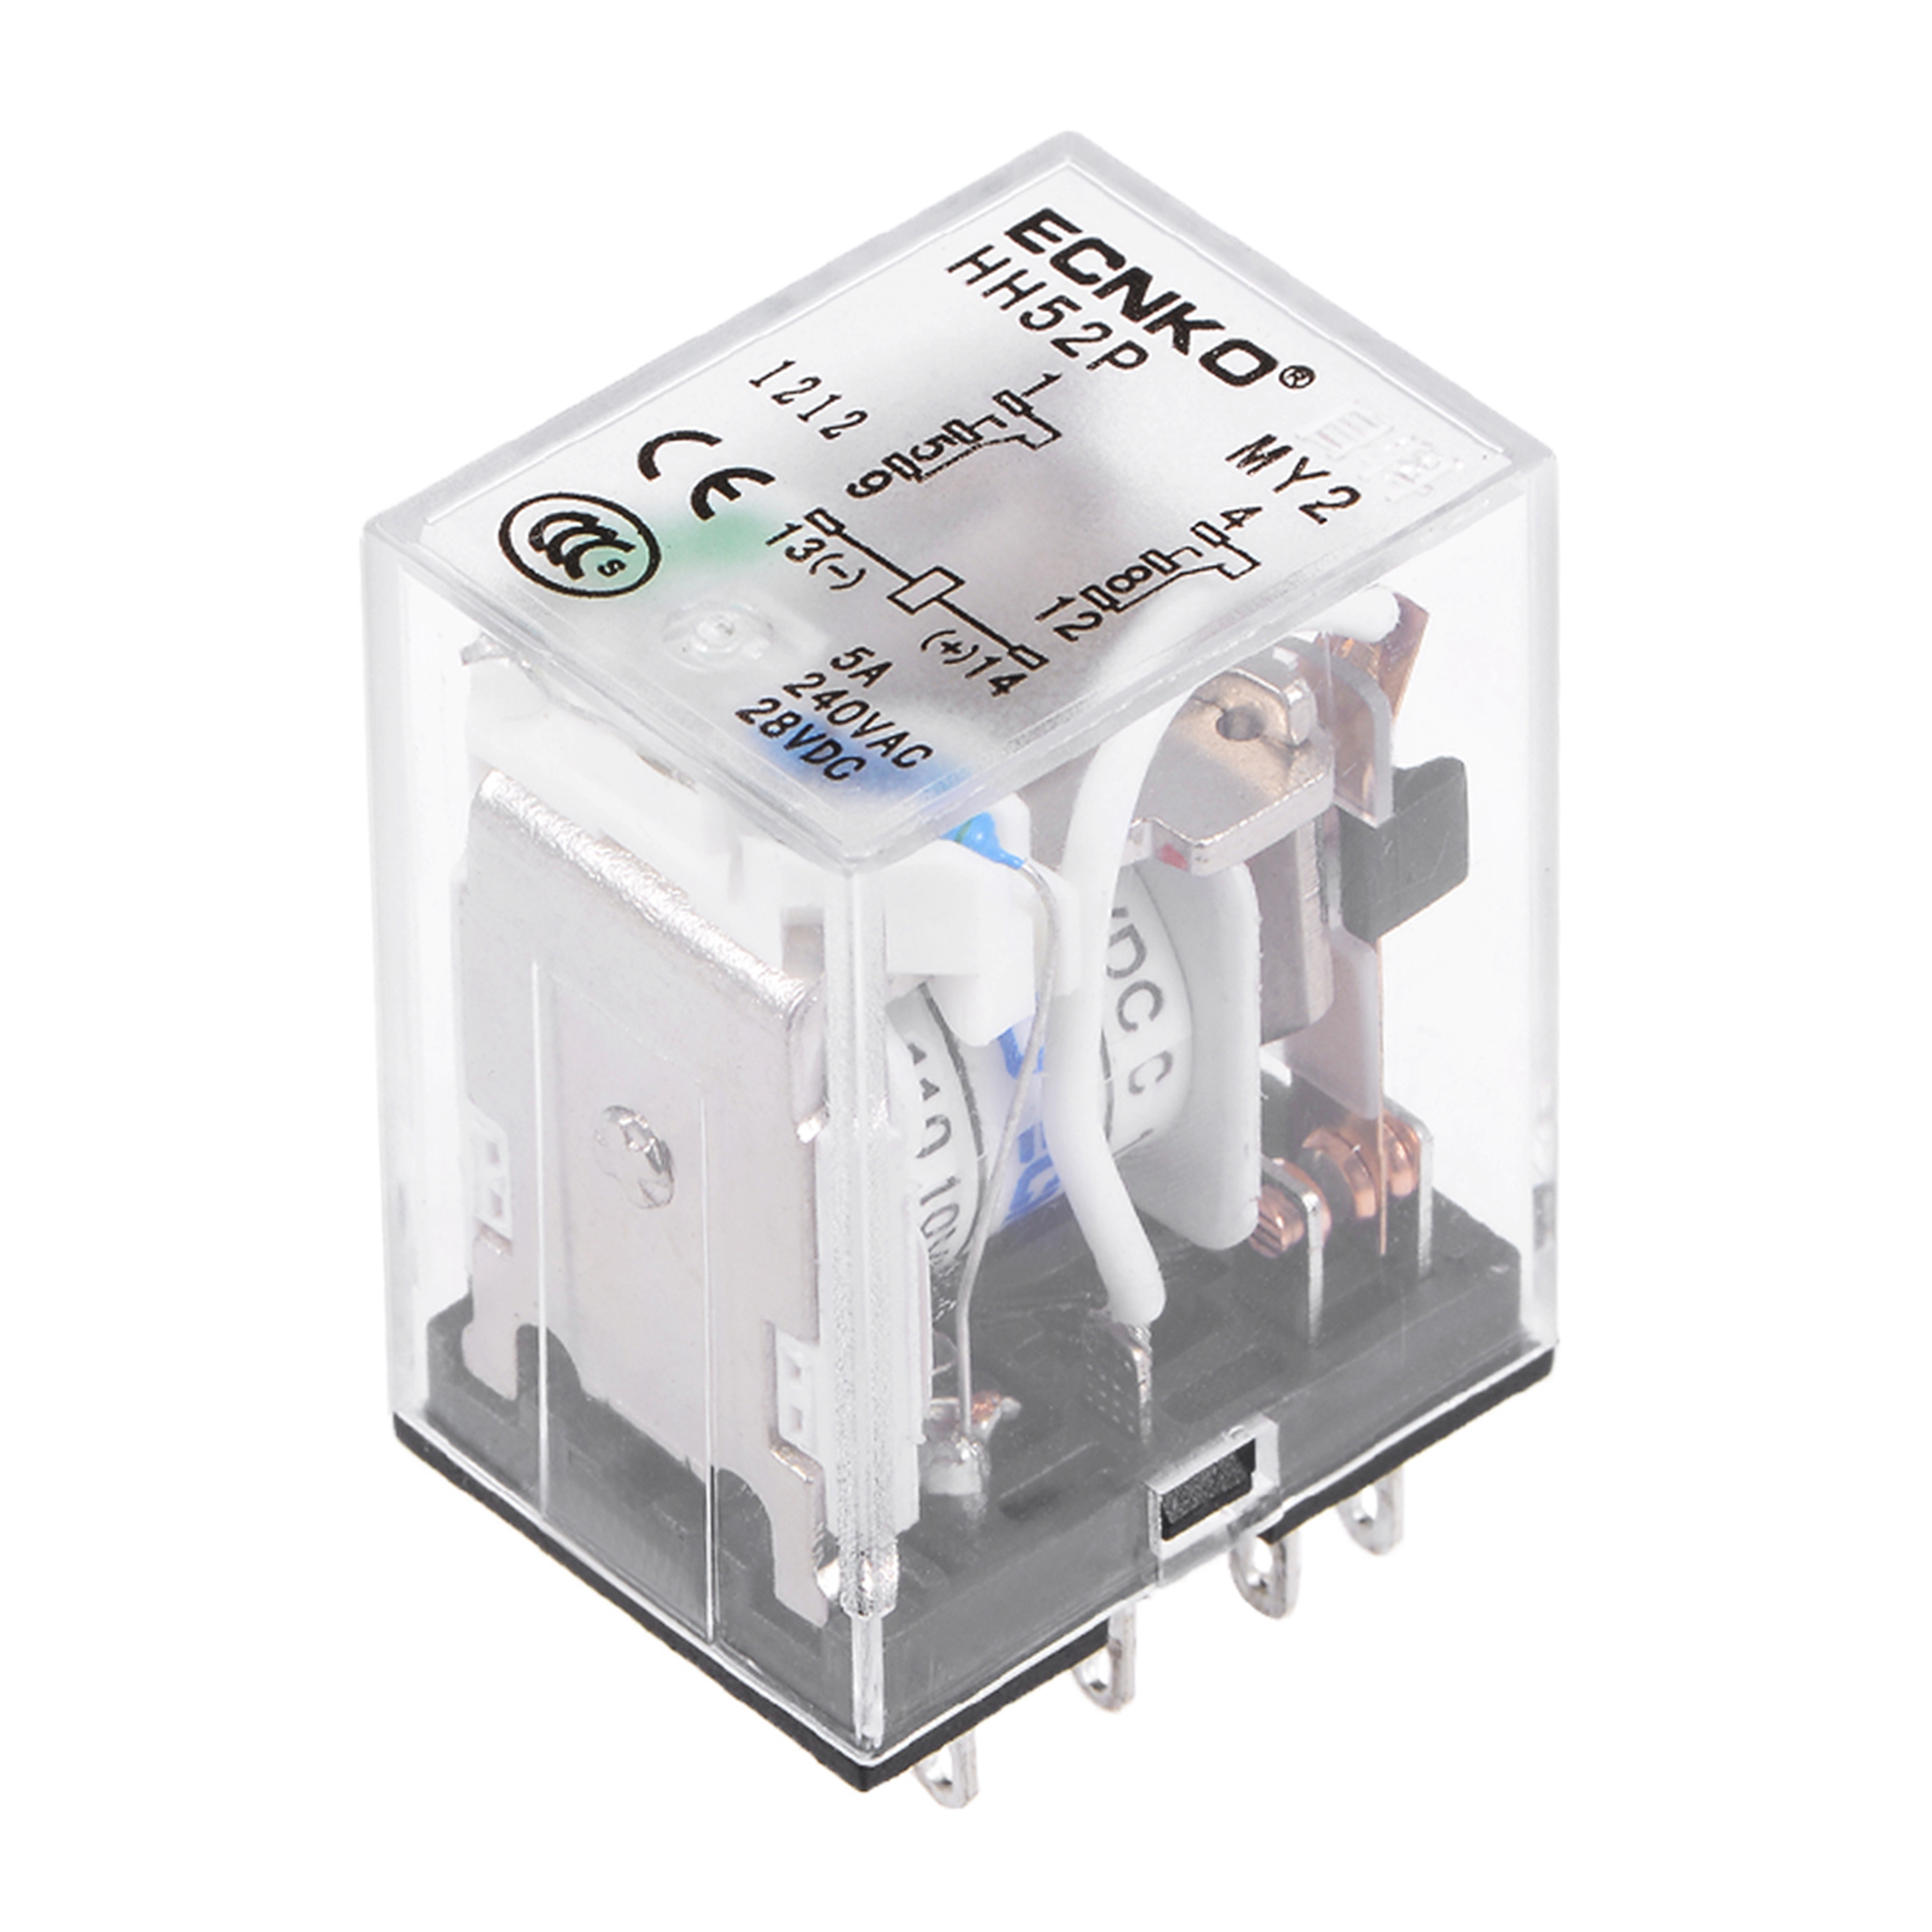 HH52P DC 36V Coil DPDT 8 Pins Electromagnetic Power Relay Green LED - image 3 de 3